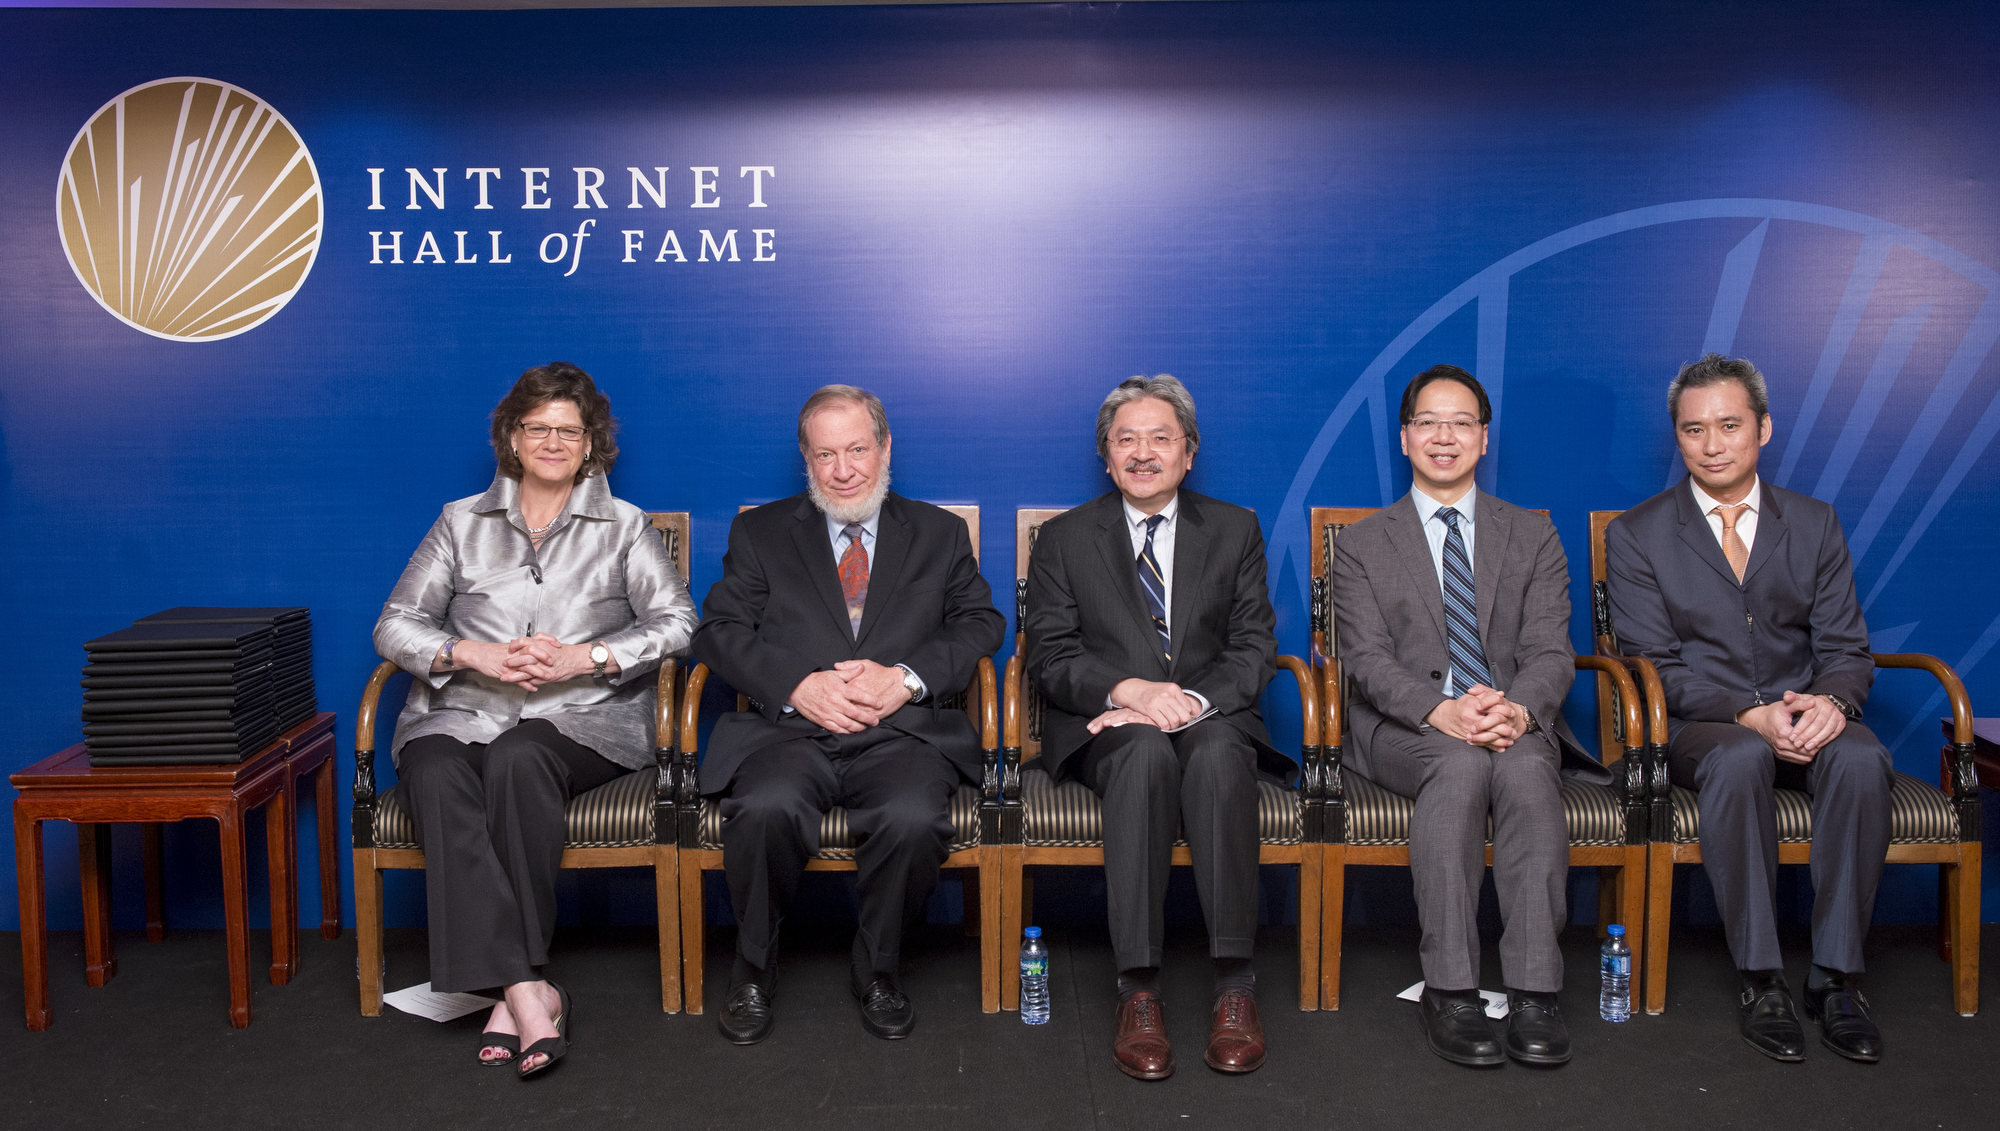 Kathy Brown, Bob Hinden, John Tsang, Charles Mok and Chester Soong